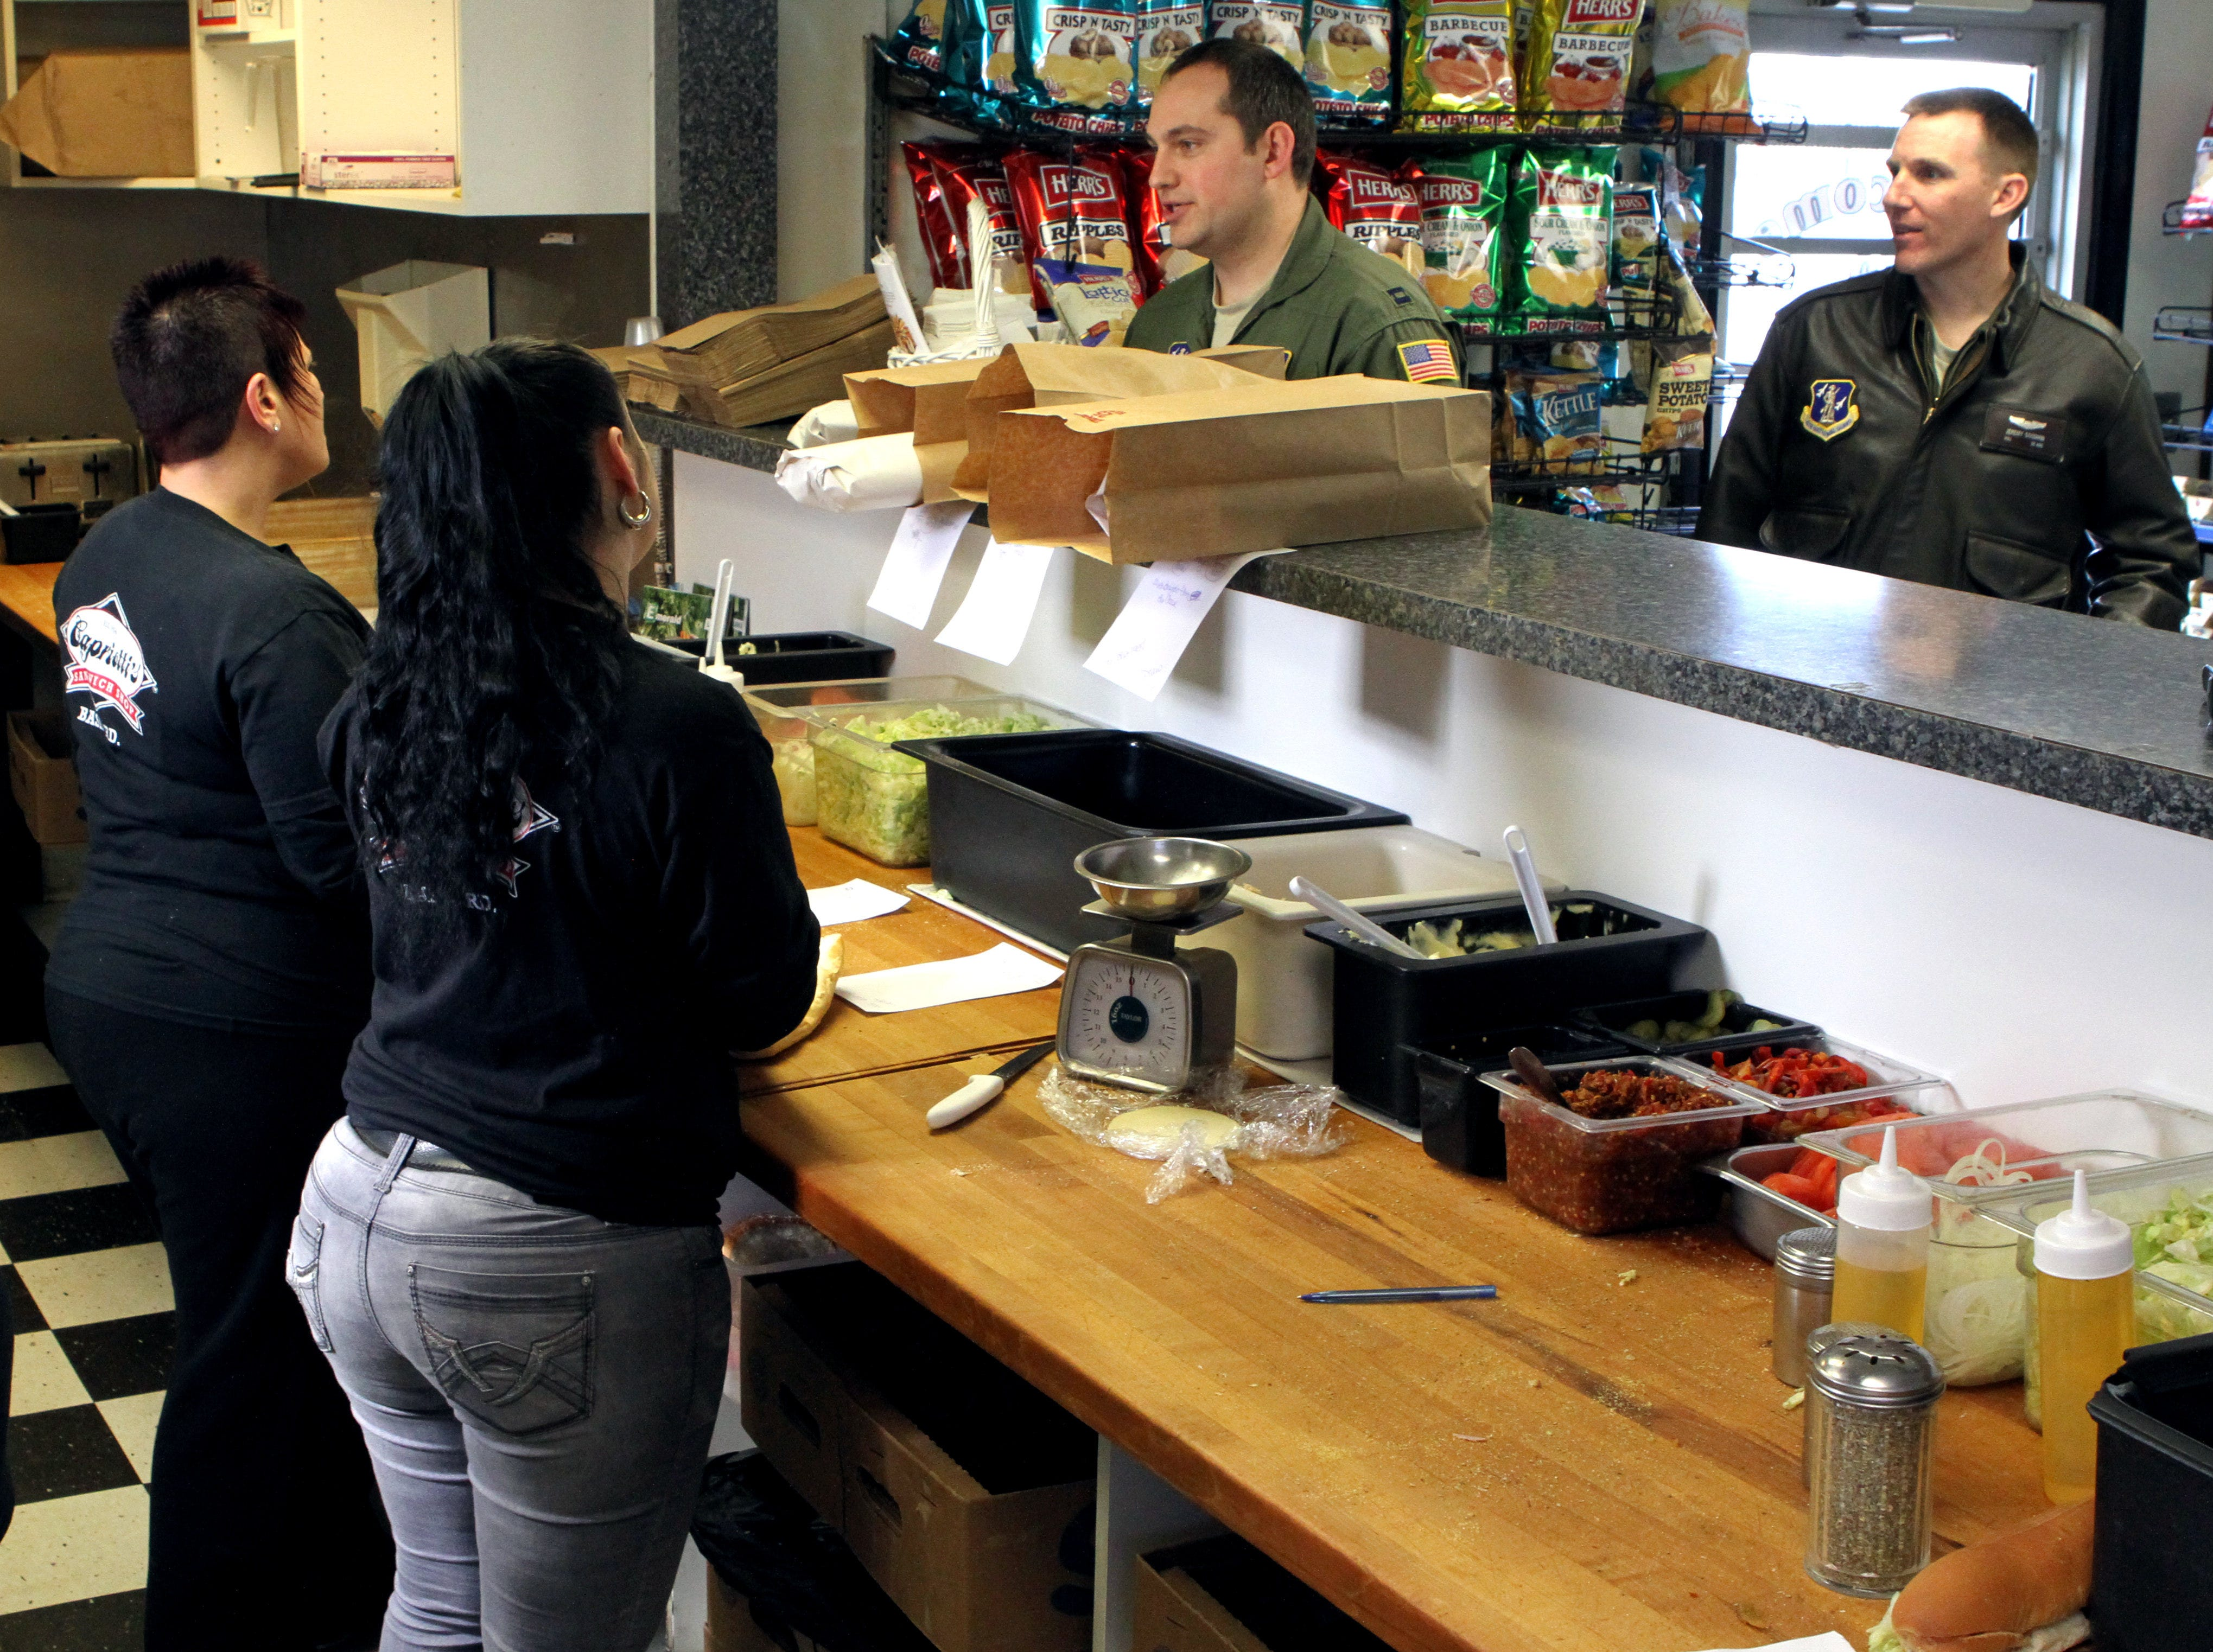 Capt. Zac Balas (left) and Maj. Jeremy Goodwin (right) wait for their sandwiches to be made at Capriotti's on Basin Road near New Castle in 2013.